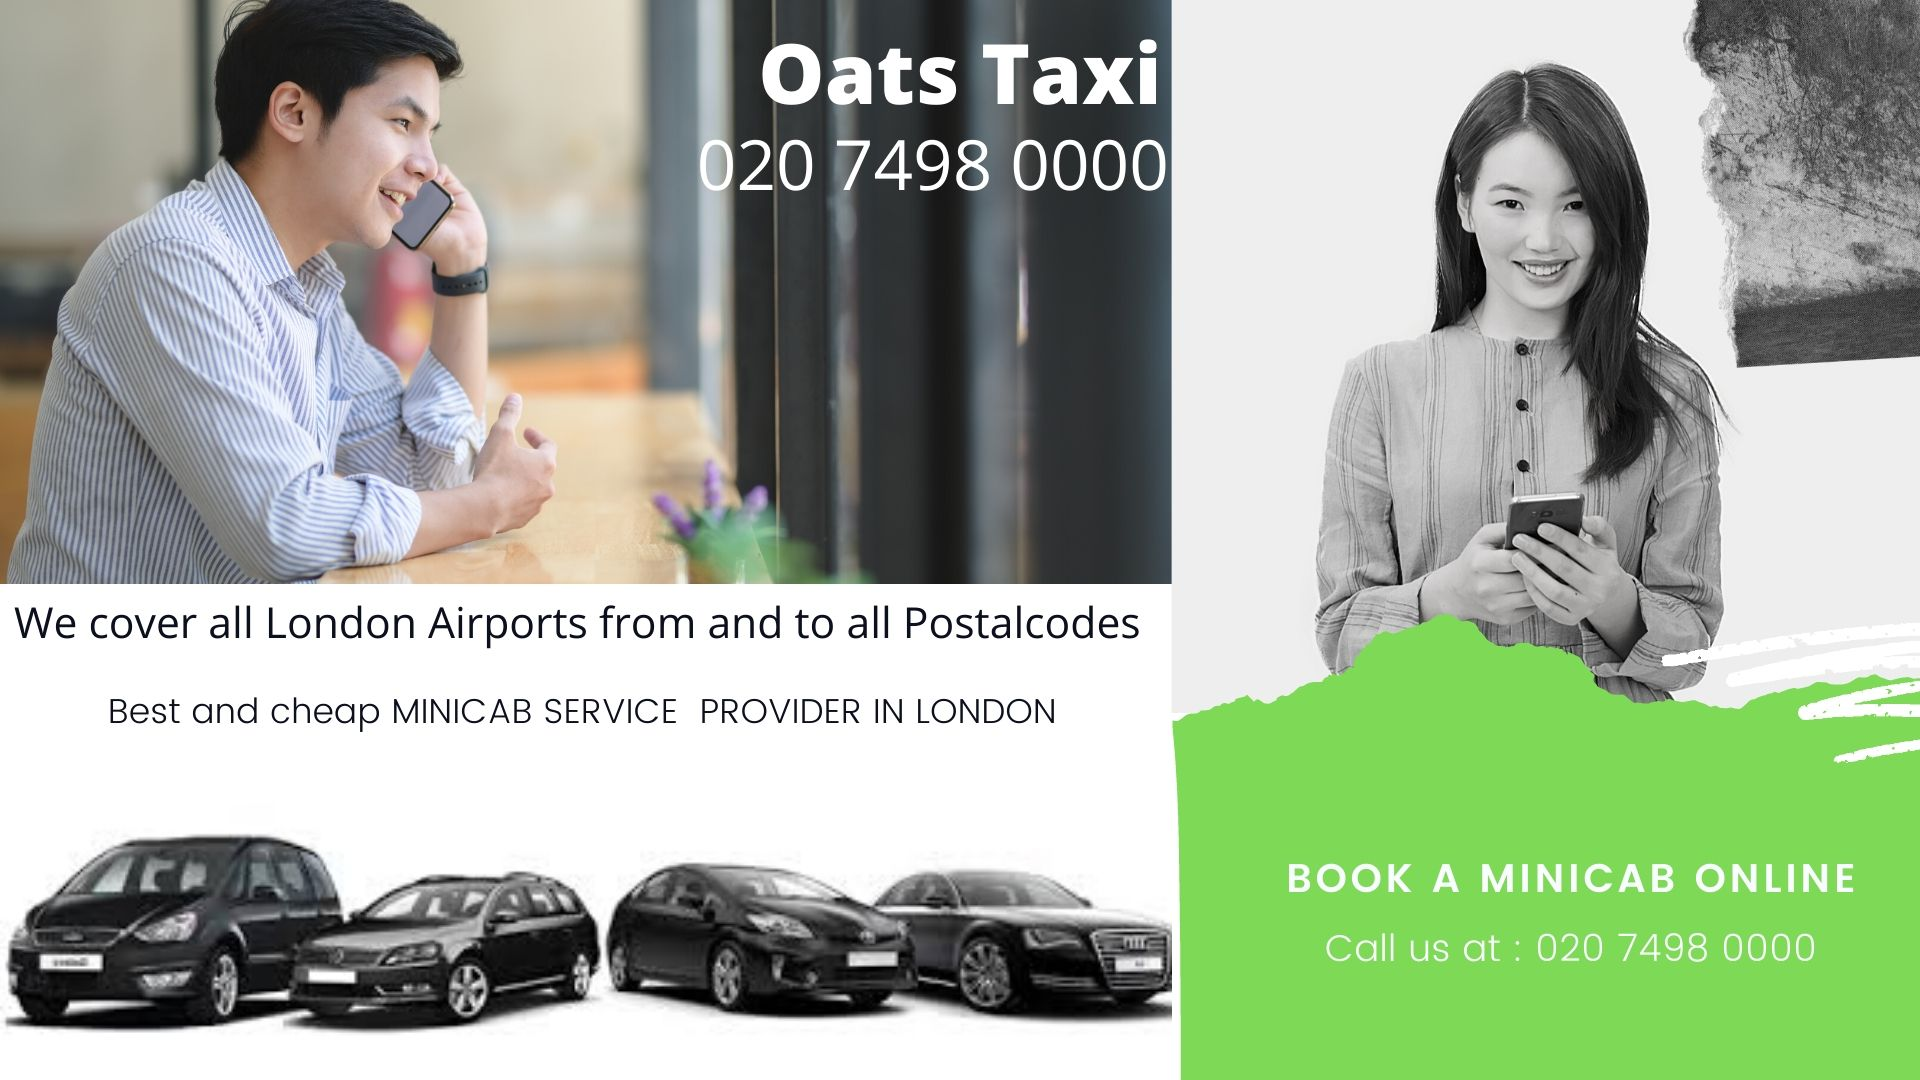 Minicab Office Near ORKNEY STREET, Battersea SW11, Minicab From Battersea SW11 To Gatwick Airport